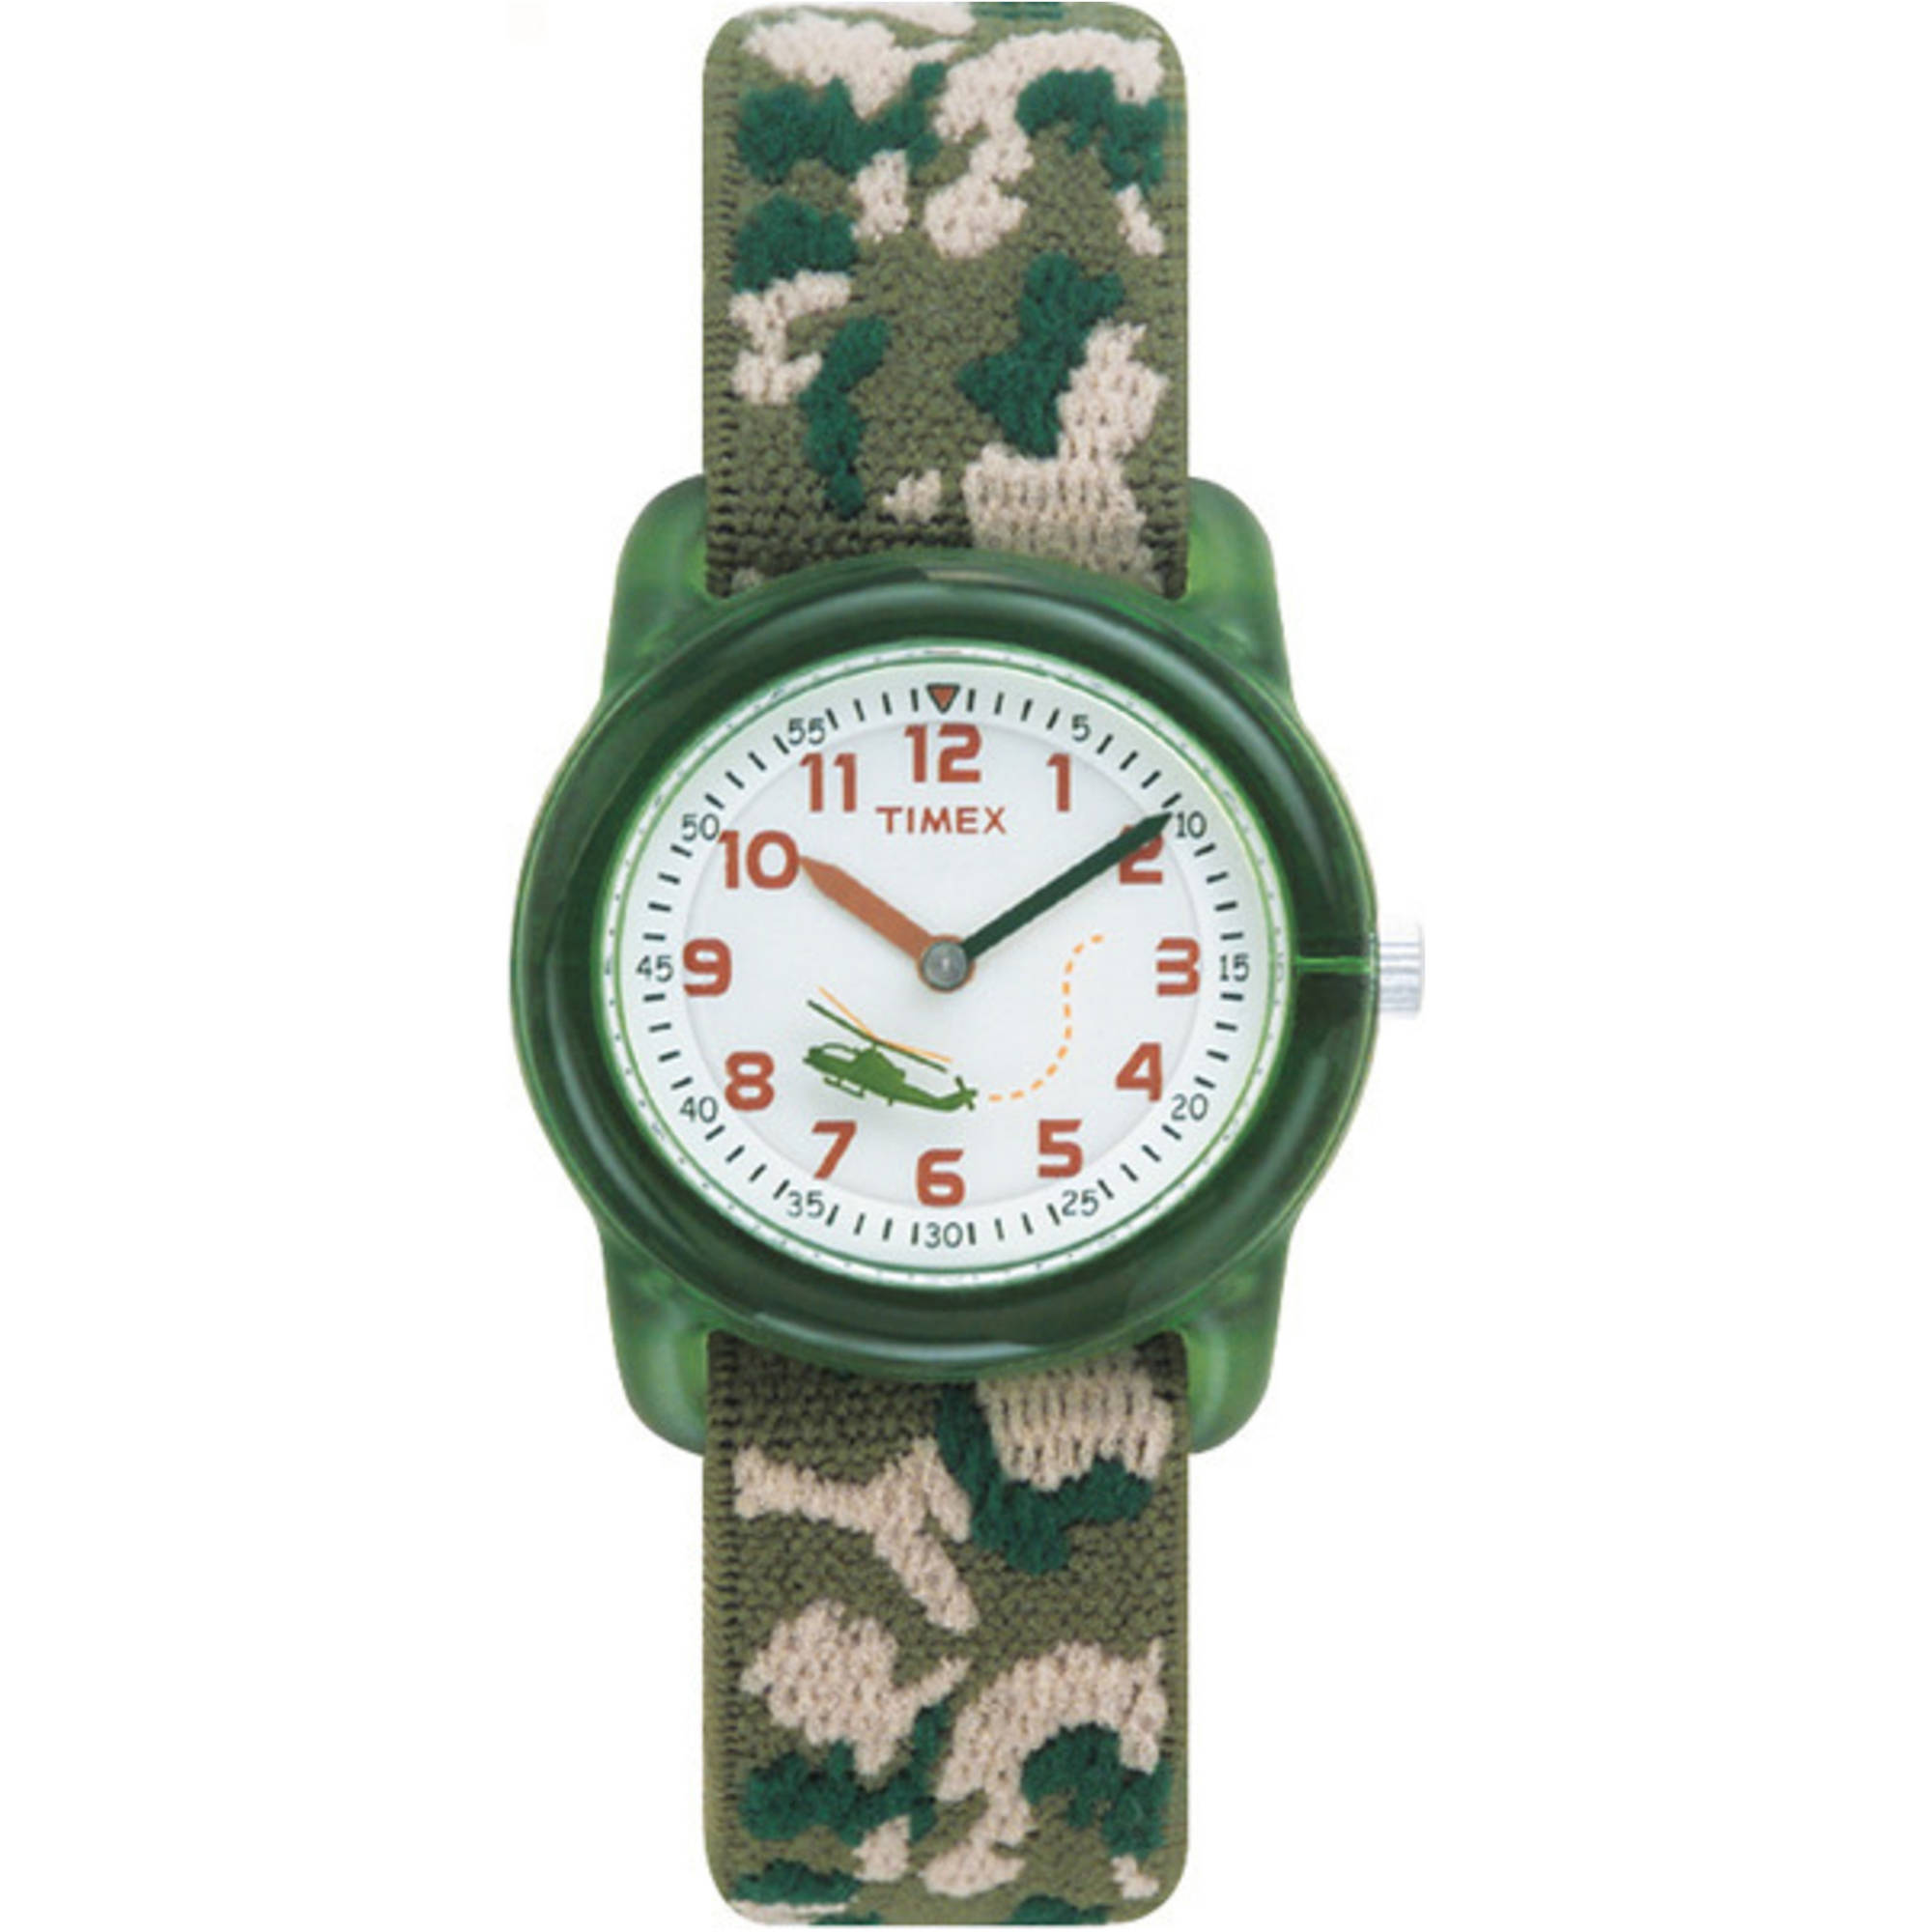 Timex Kids' Green Analog Watch, Camo Elastic Fabric Strap